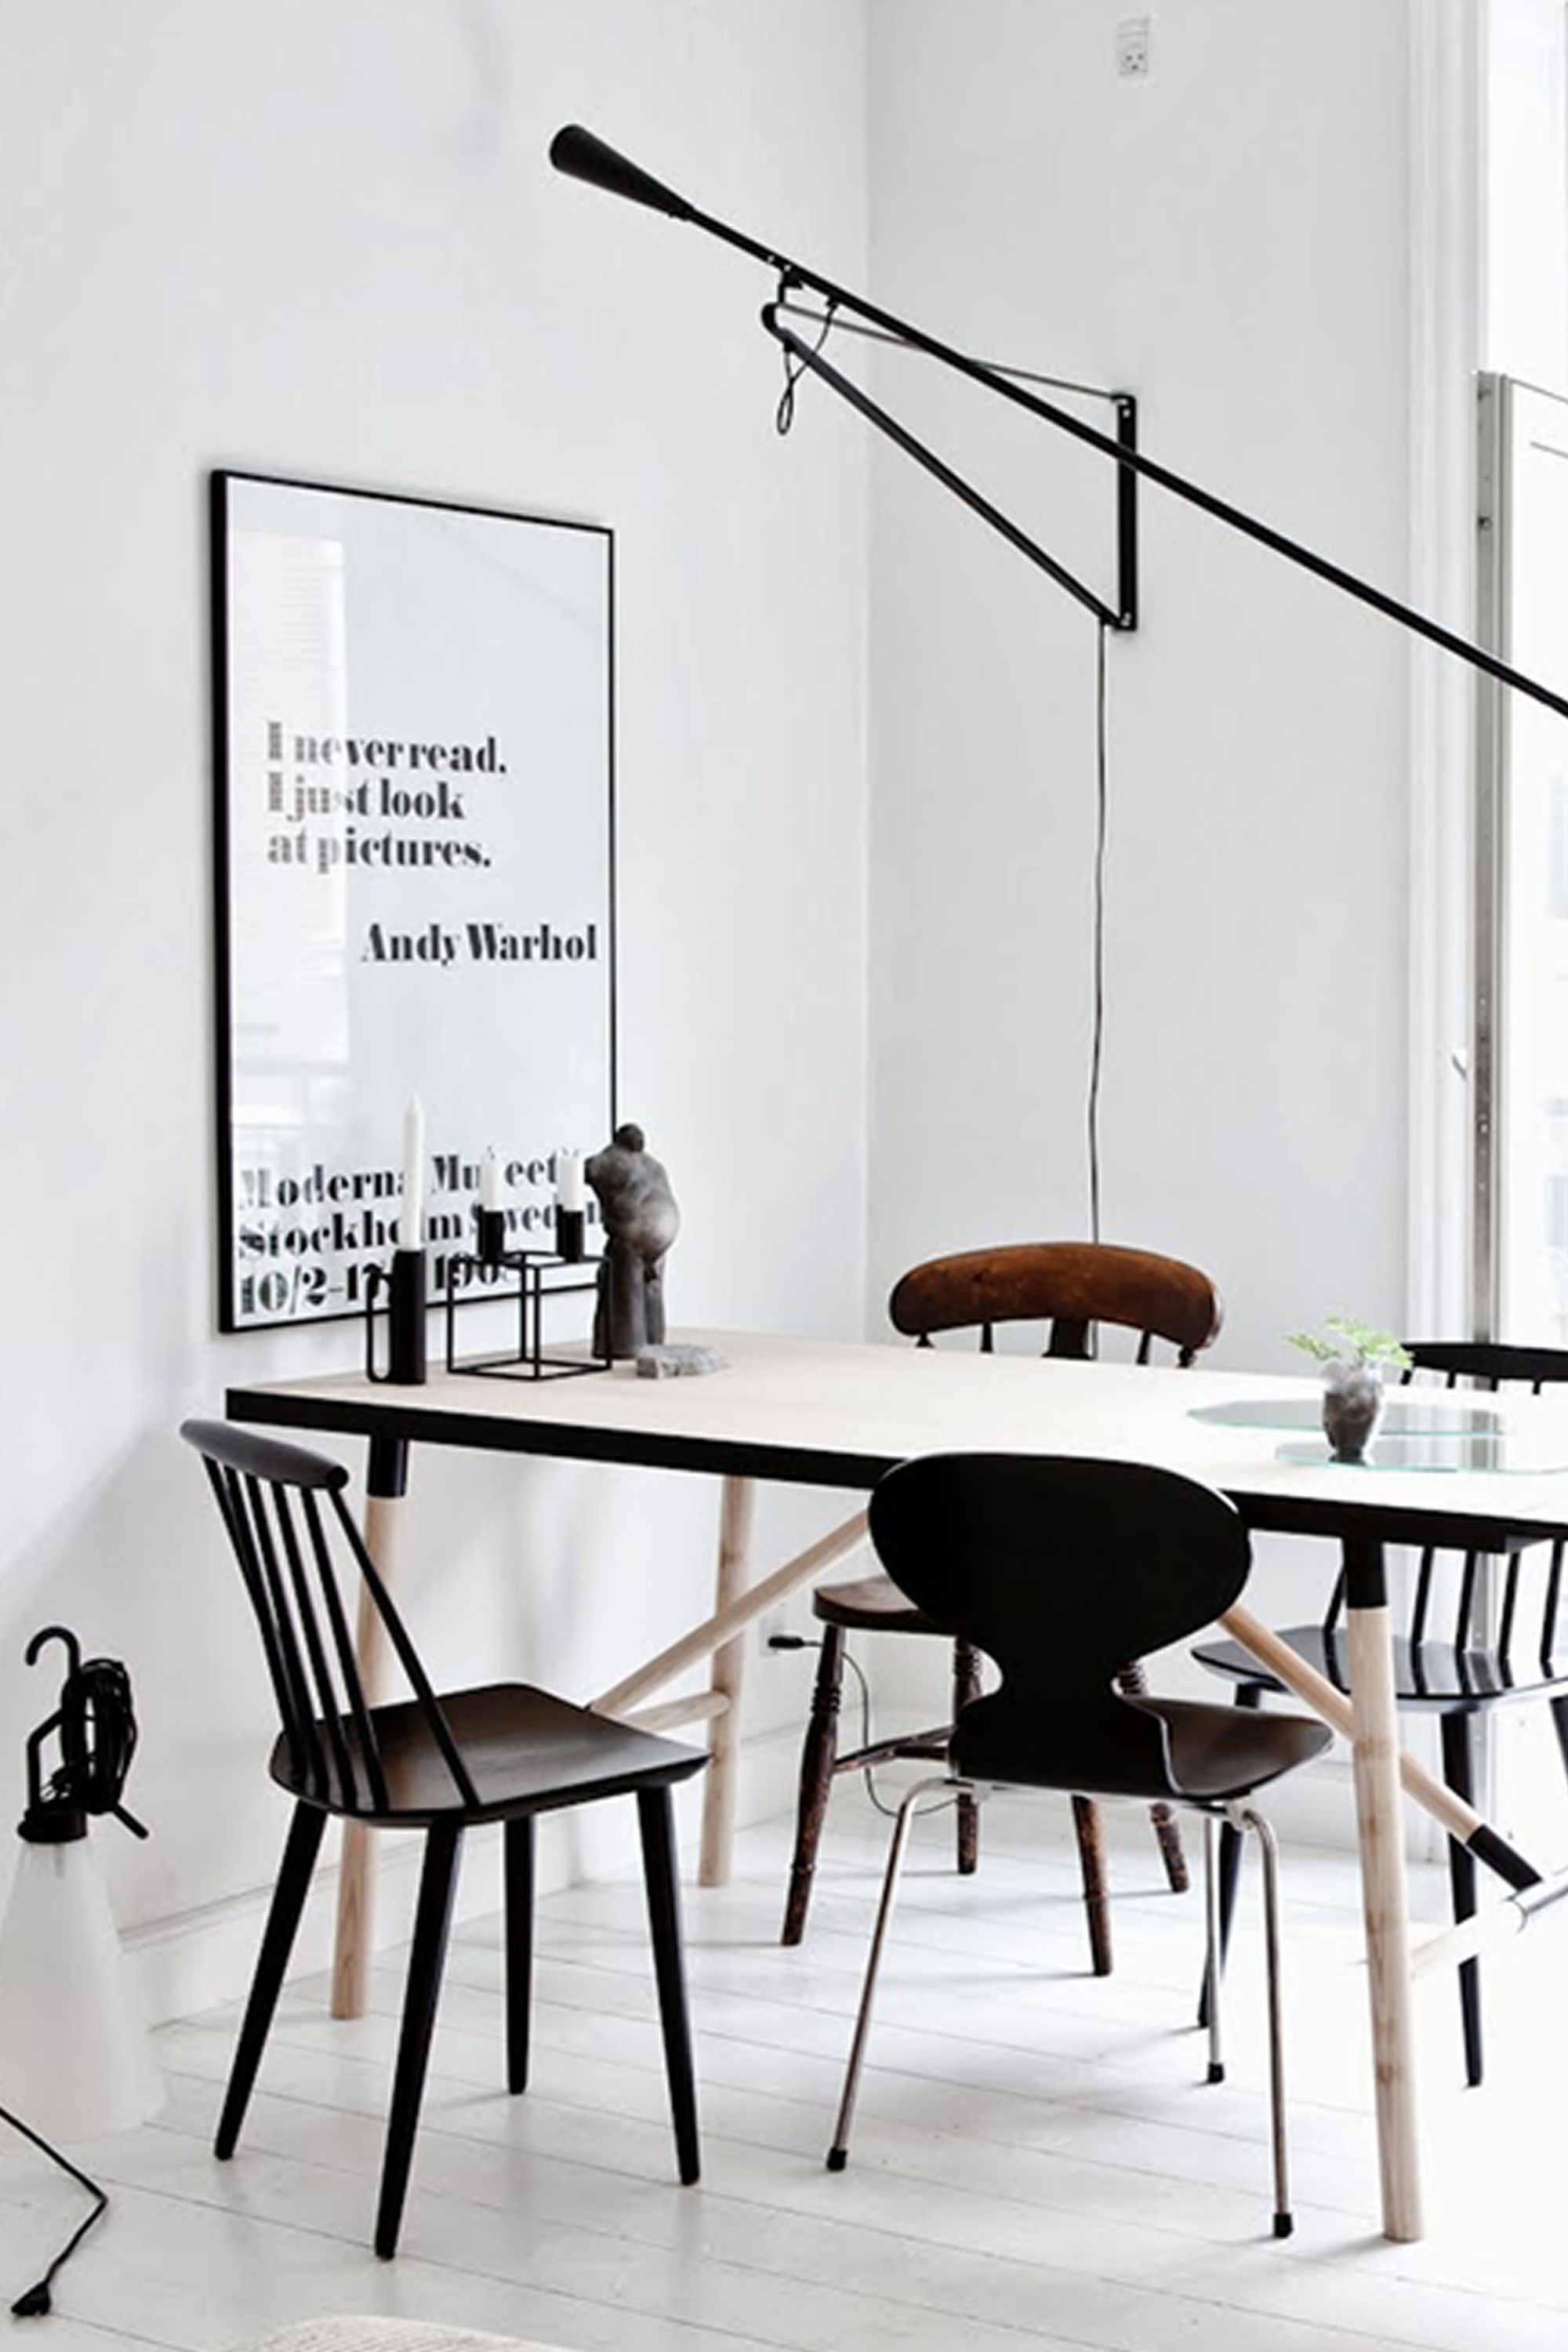 A Classic Wooden Chair Design Made Of Solid Beech Hay J77 Dining Chair By Scandinavian Designer Folke Palsson In 2020 House Interior Interior Home Decor